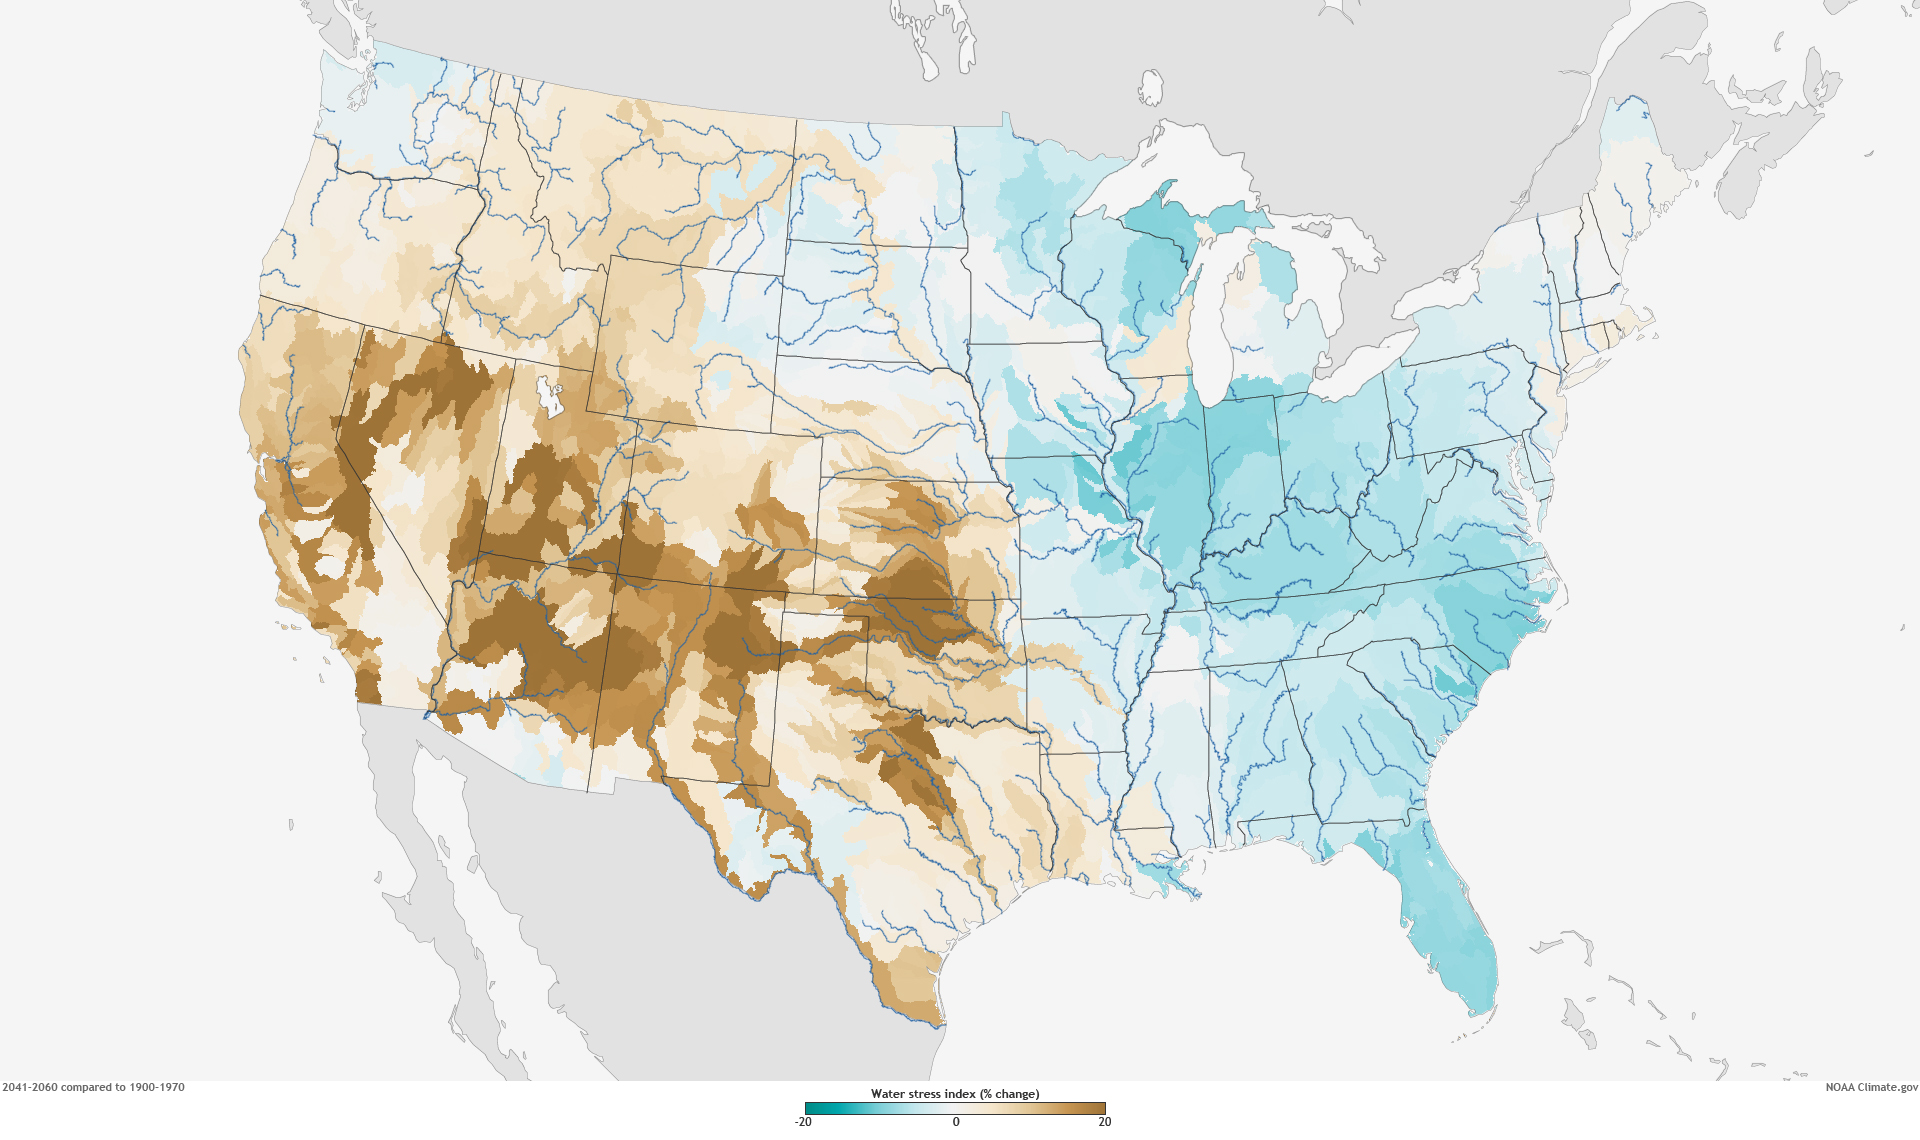 Climate Change To Increase Water Stress In Many Parts Of US - Image of us map at 2040